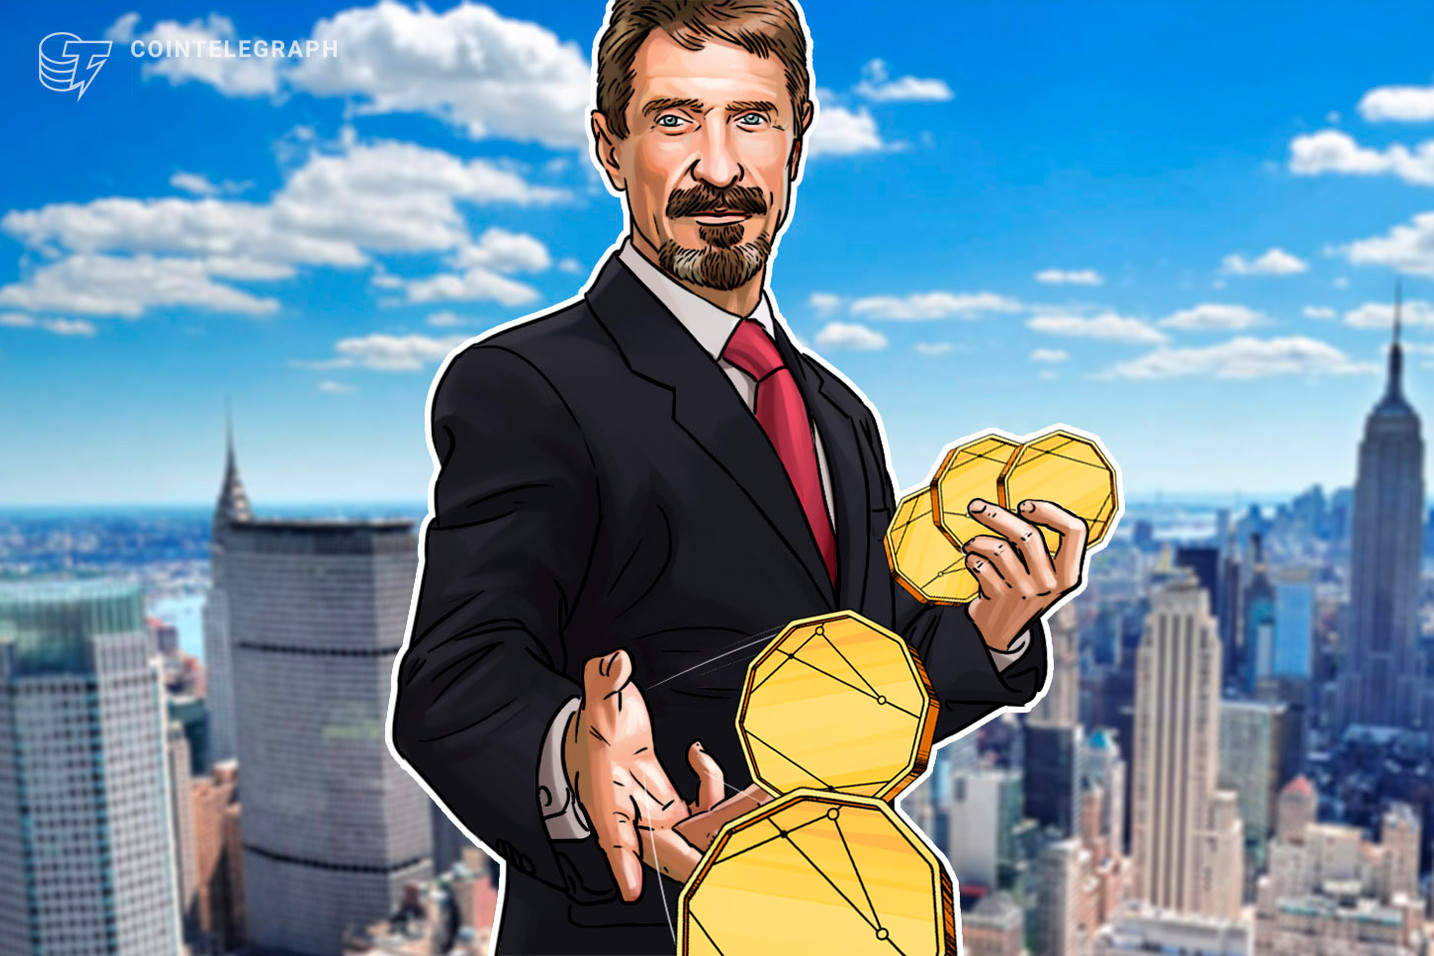 'I Don't Want to Be President': John McAfee to Exclusively Promote Crypto in 2020 Race